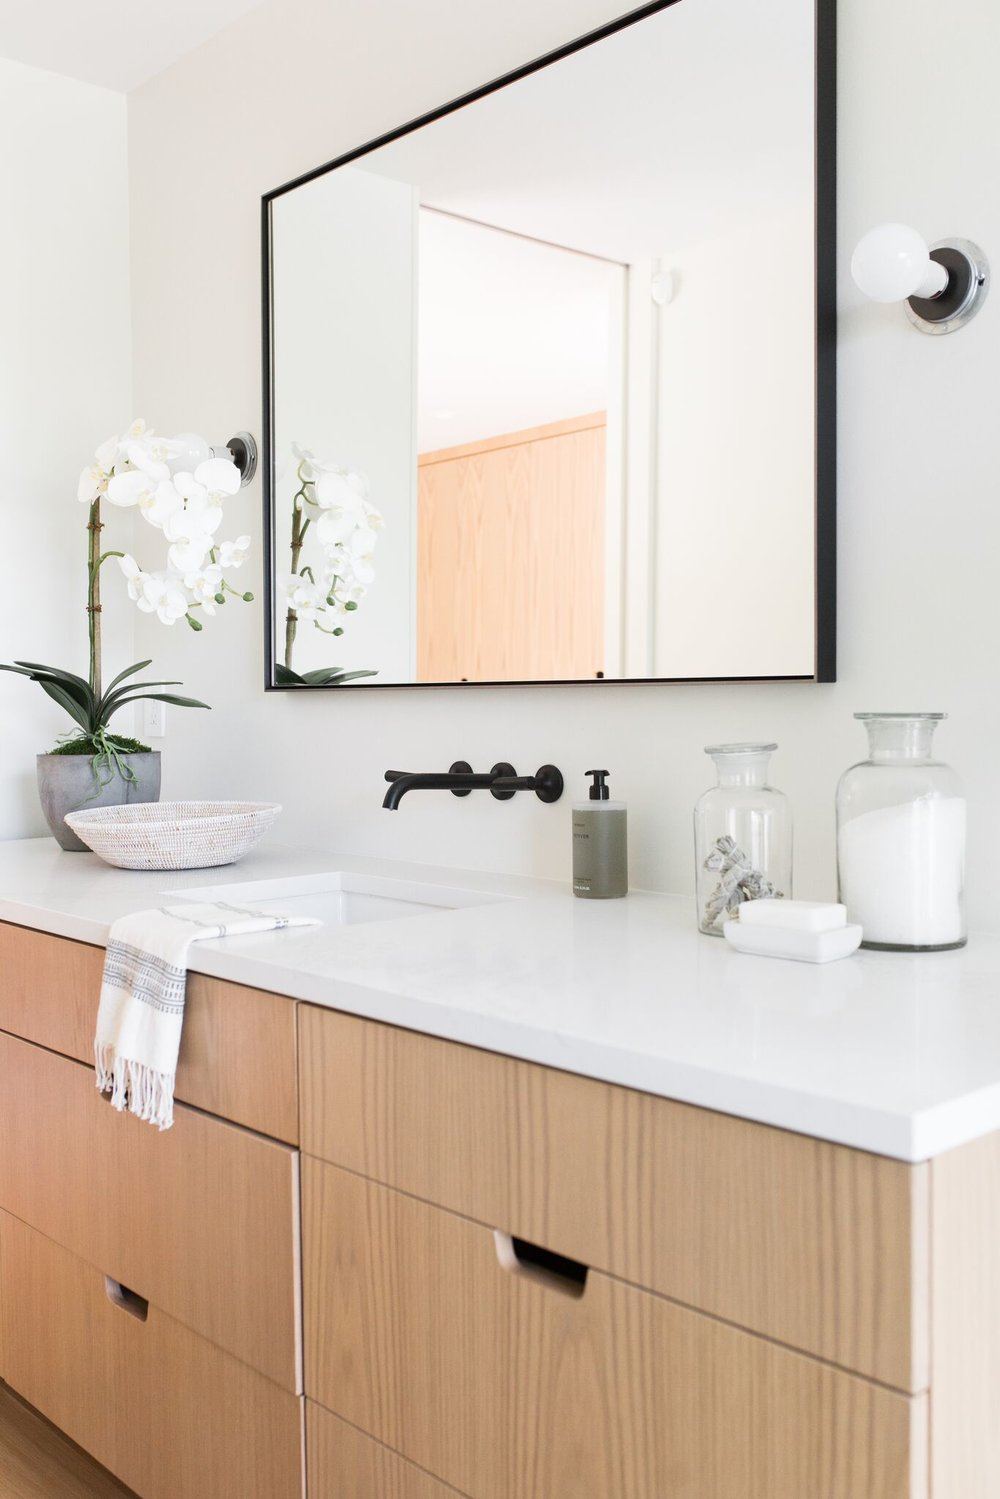 Trends We Re Loving Wall Mounted Faucets Studio Mcgee